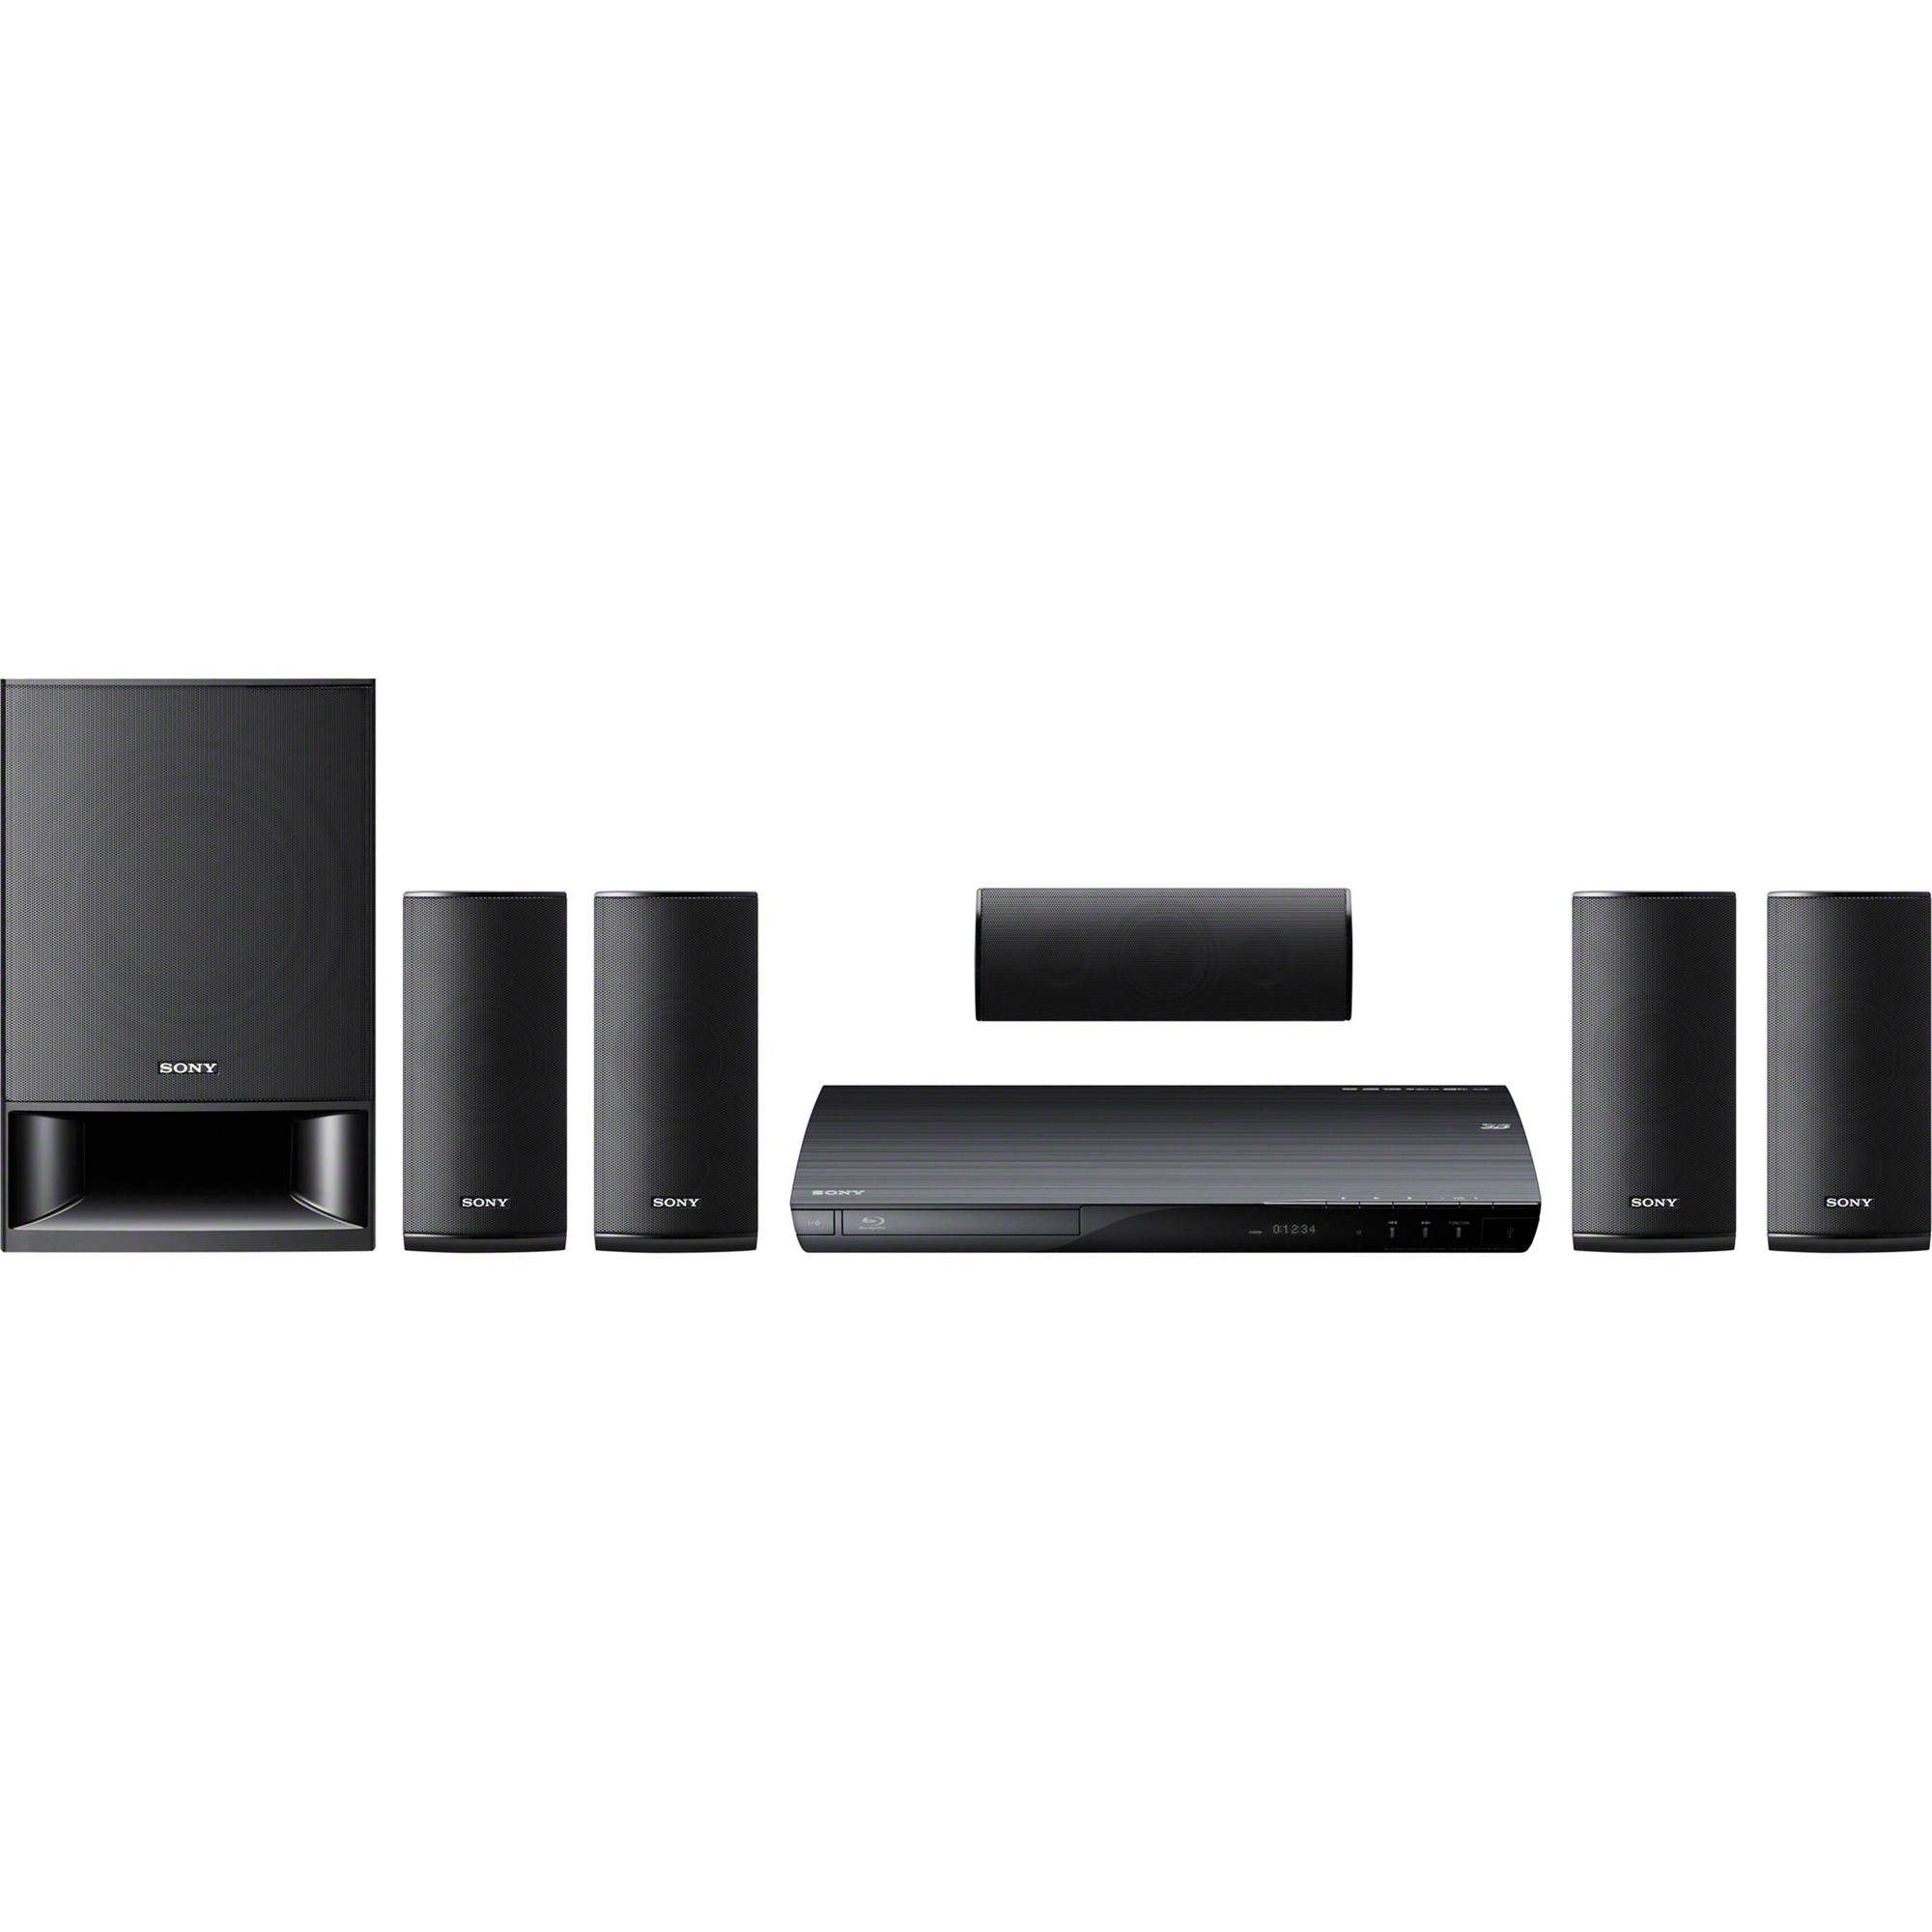 sony bdv e390 5 1 channel 3d blu ray home theater system. Black Bedroom Furniture Sets. Home Design Ideas